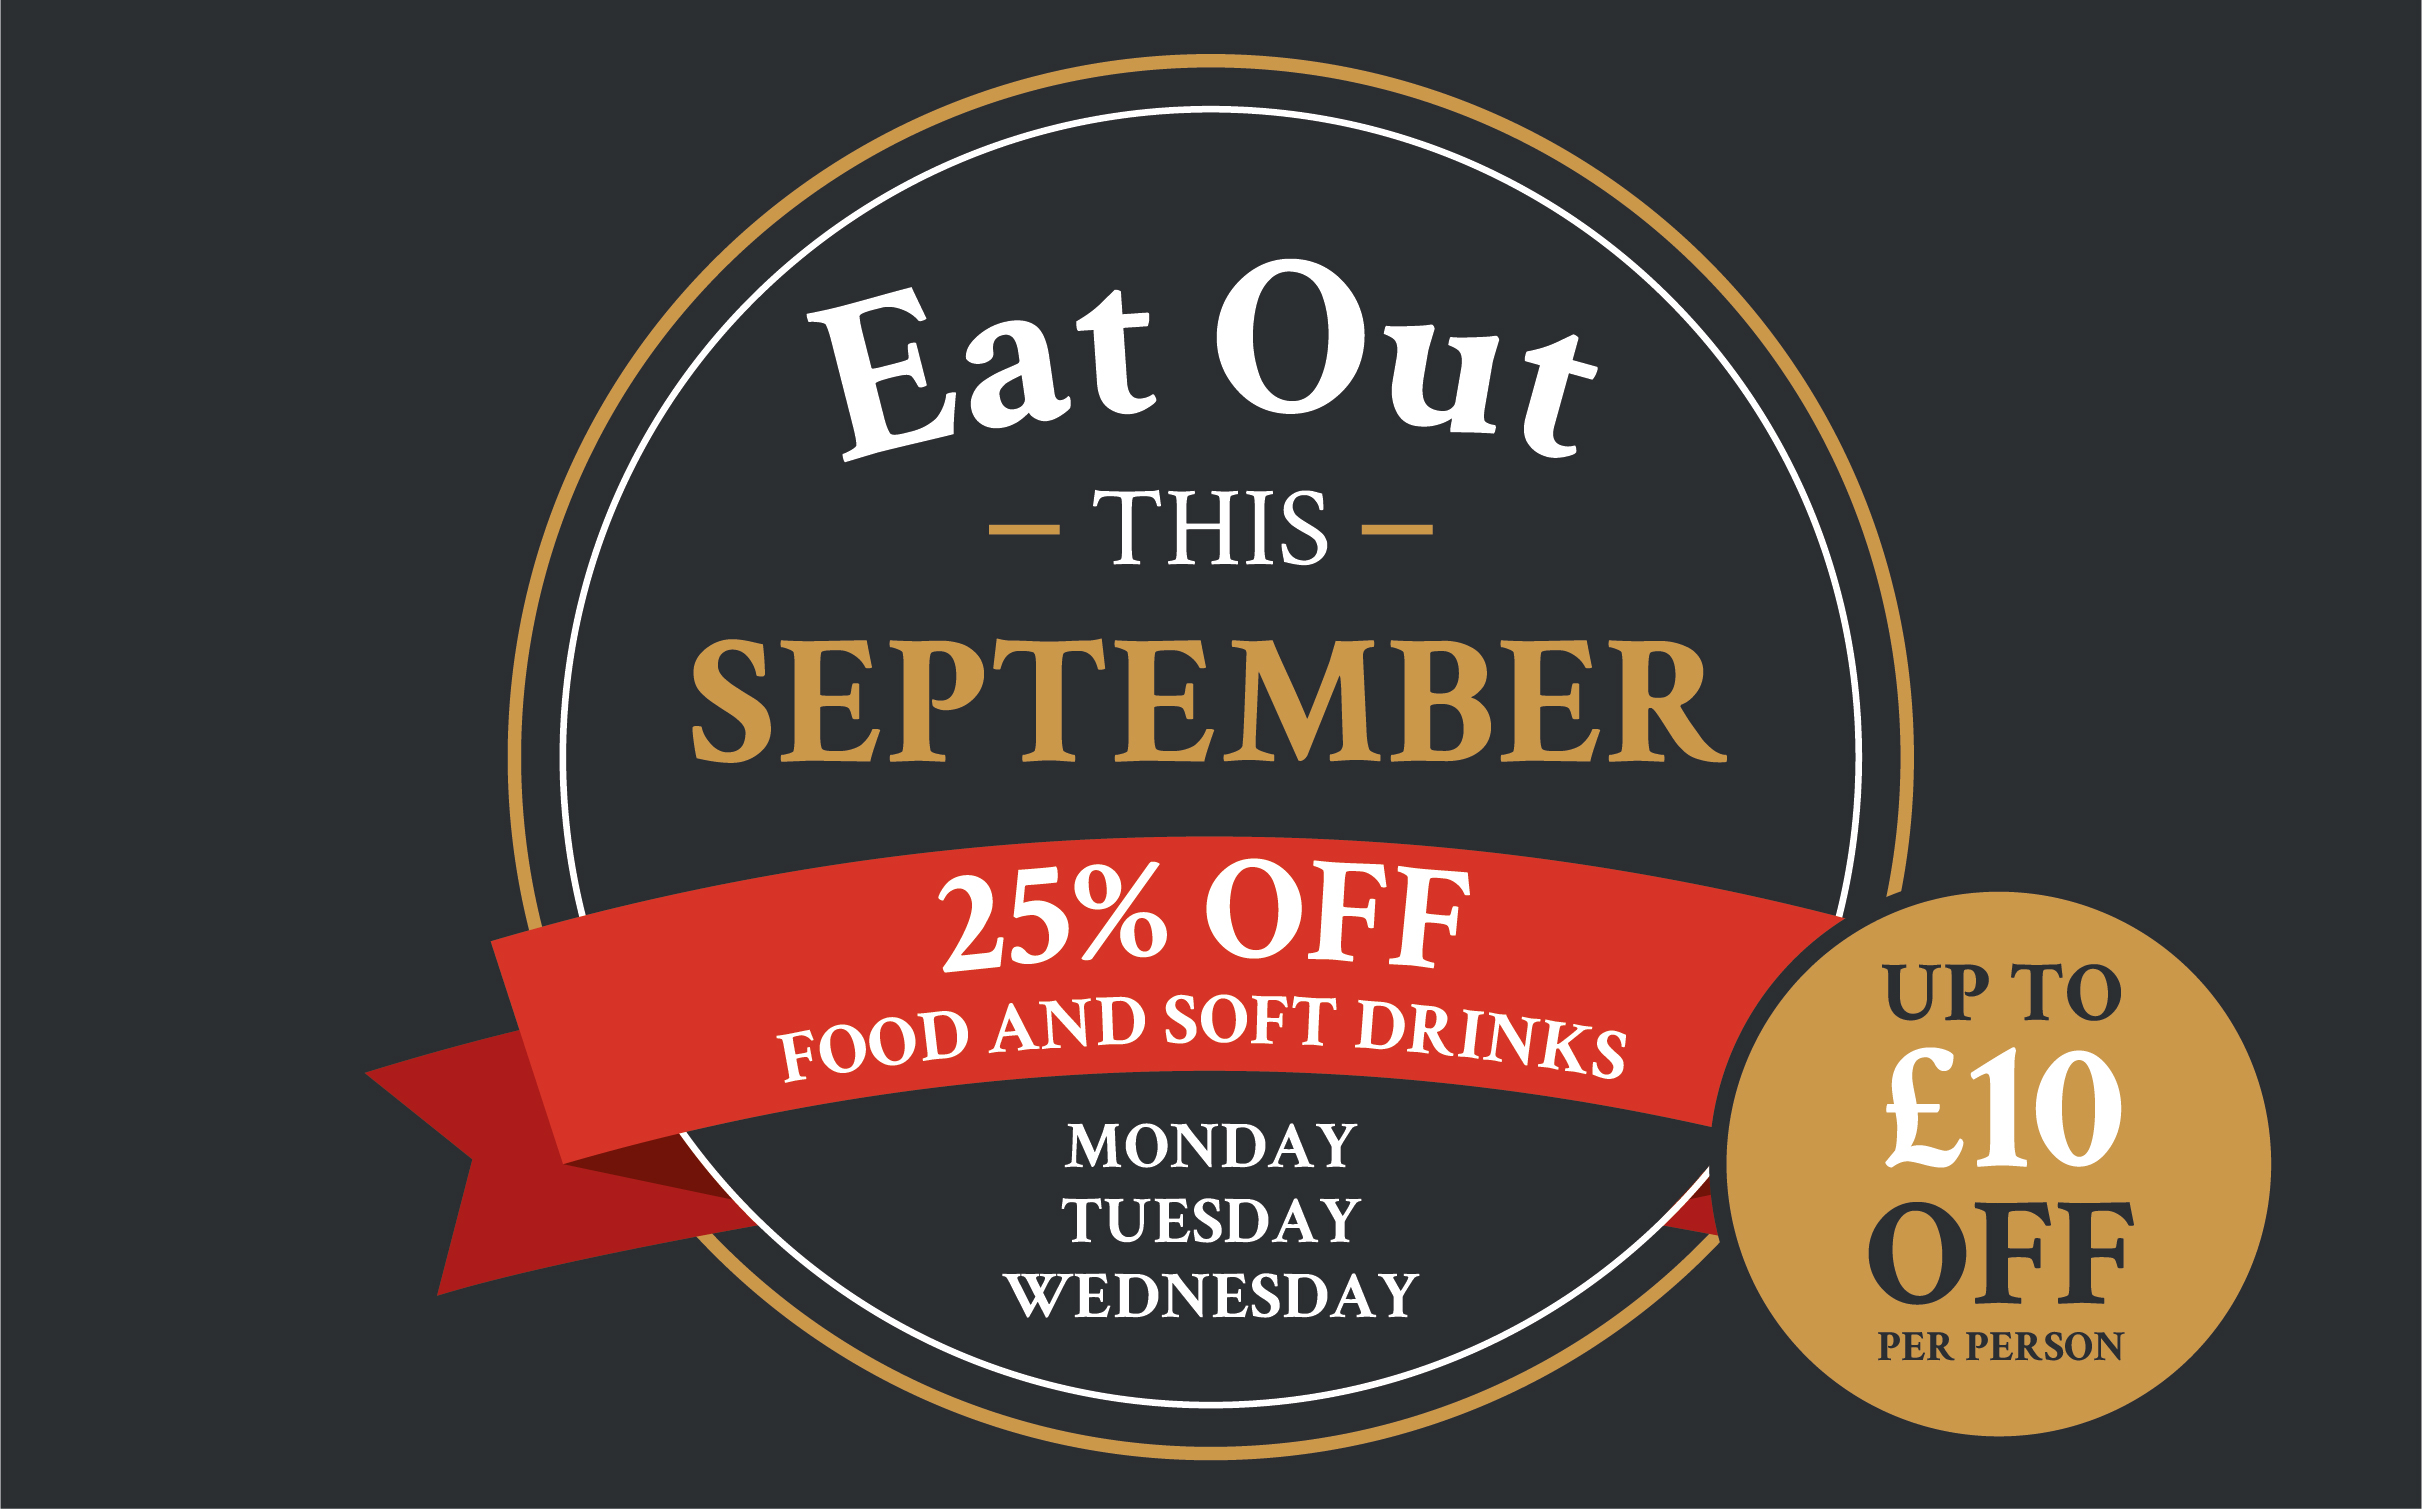 Eat Out this September